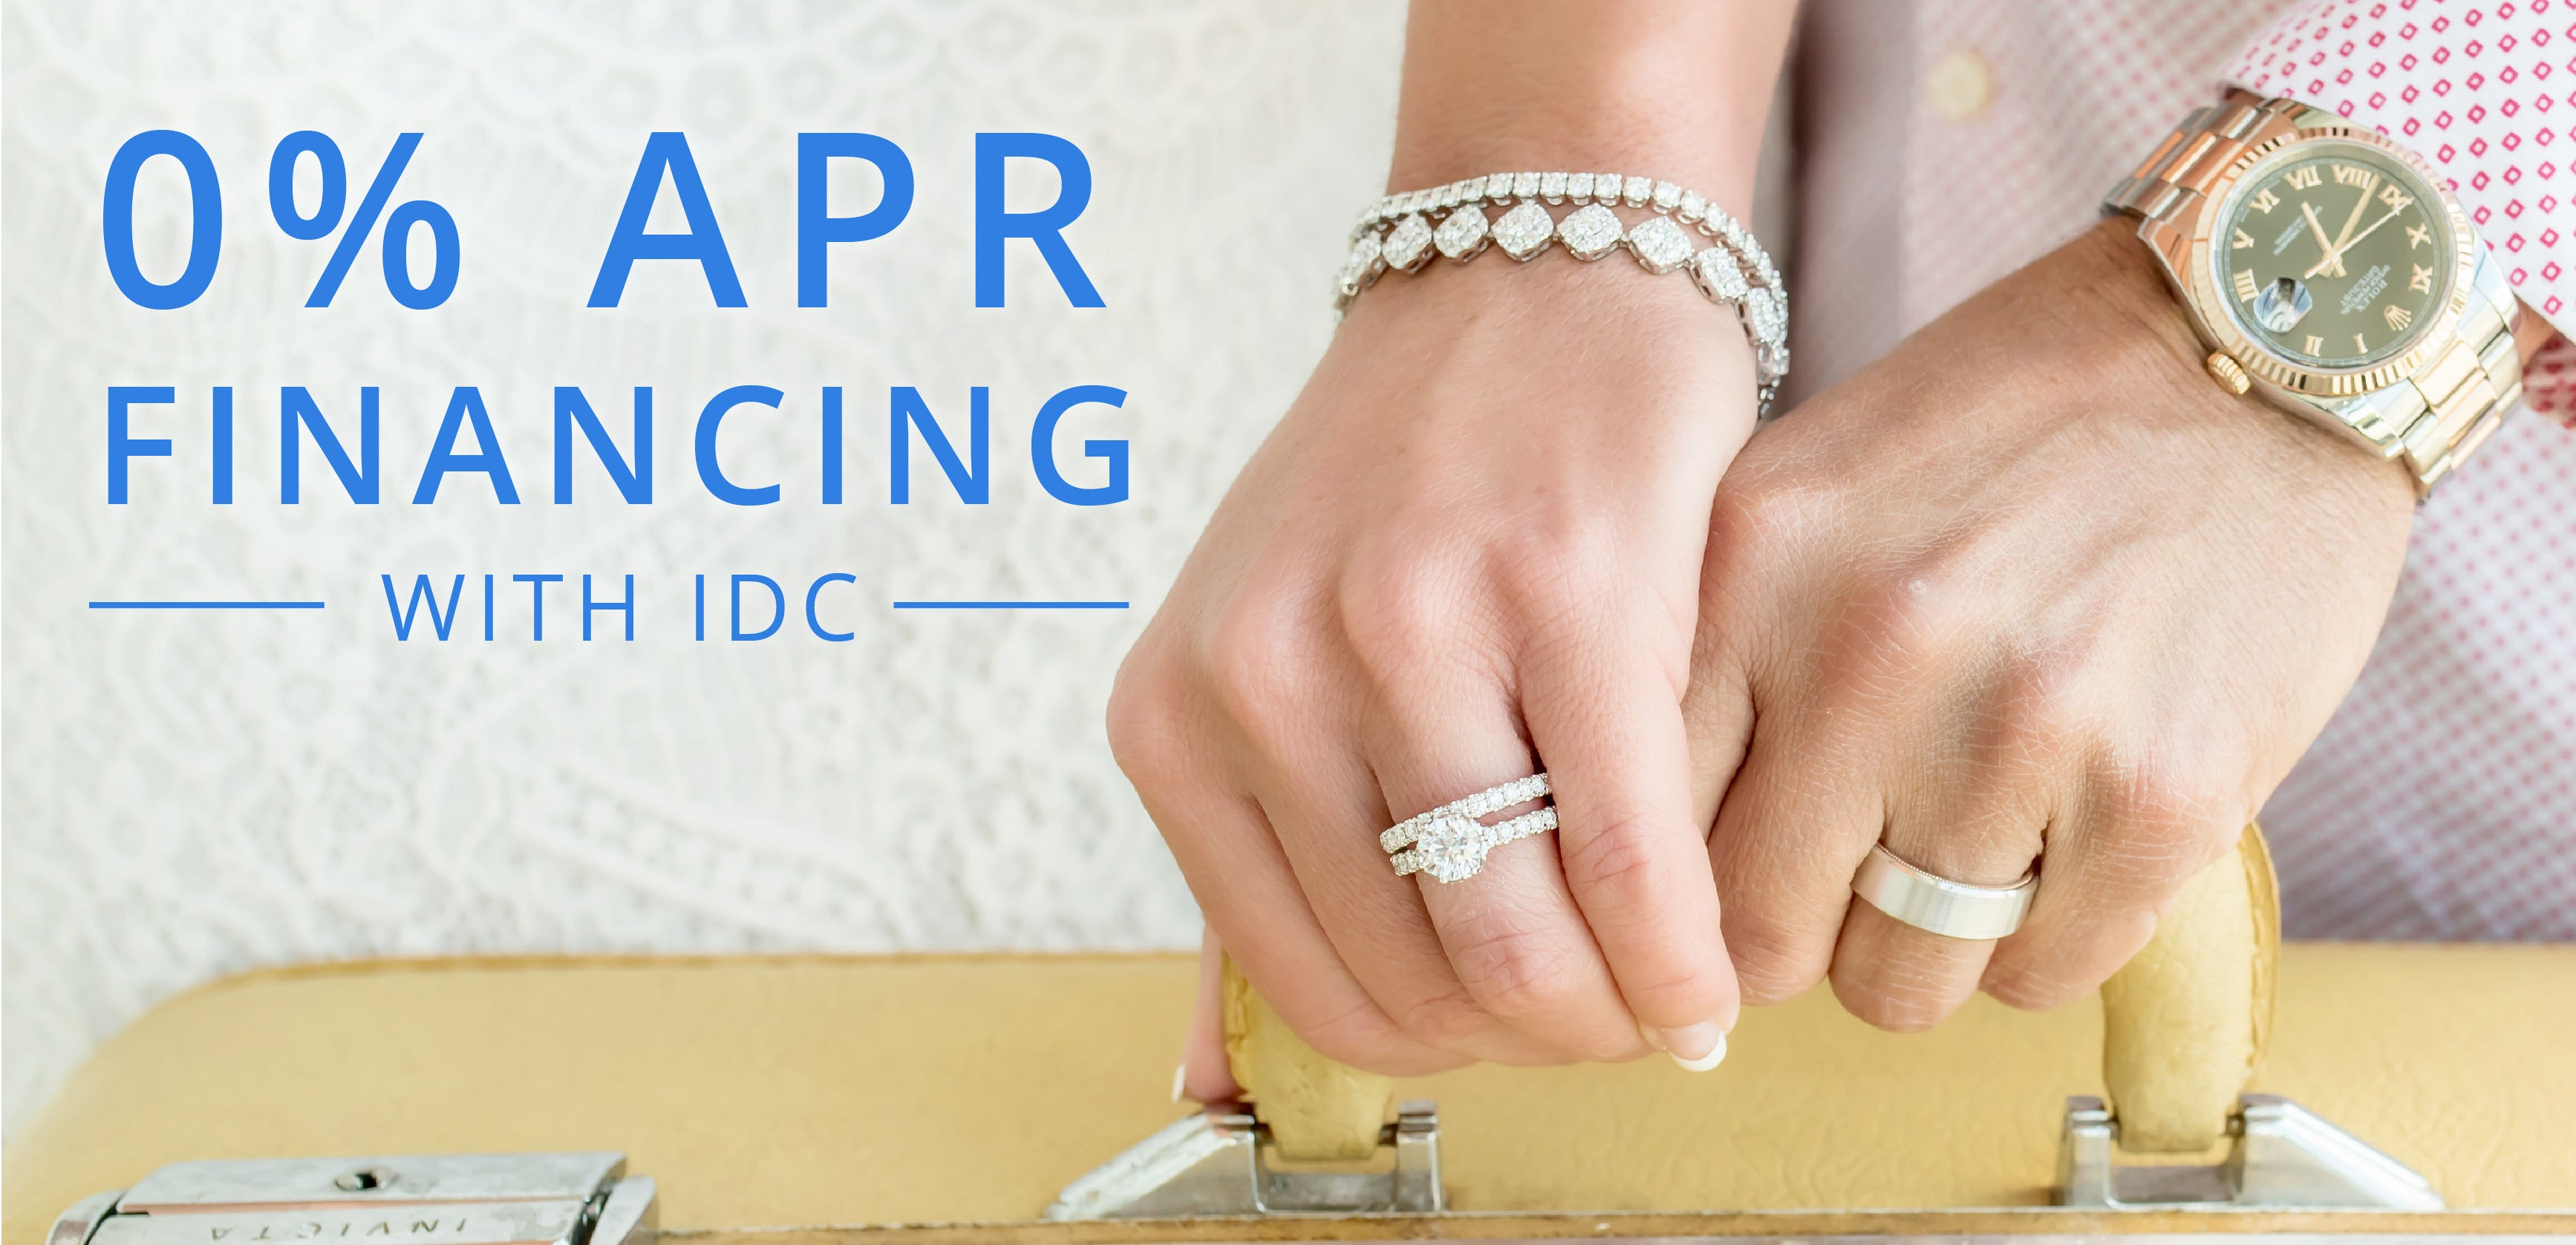 0% APR Financing with IDC